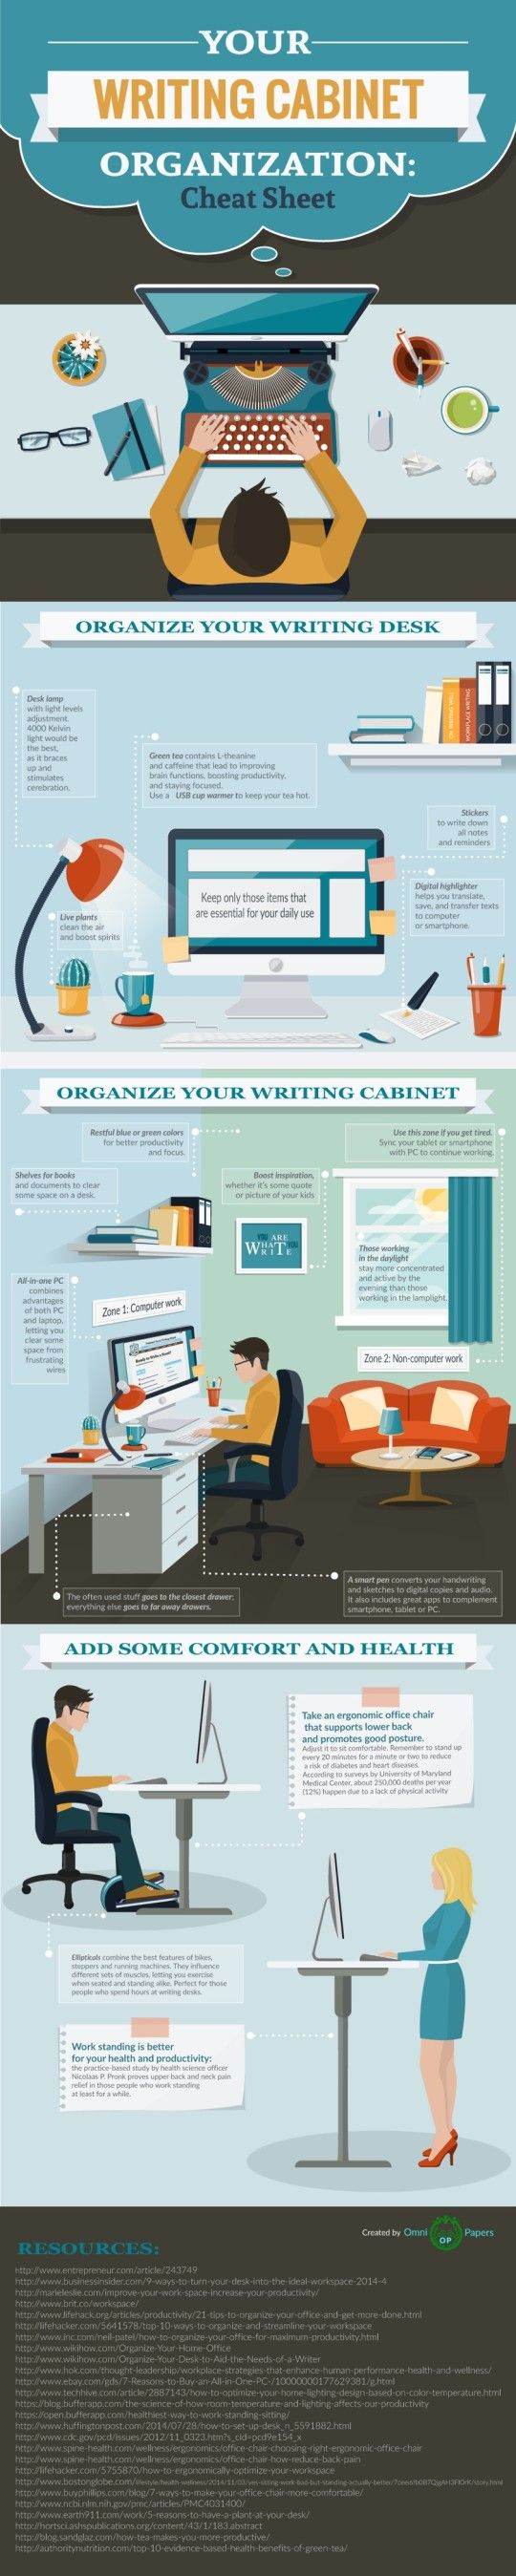 A Properly Organized Writing Space Will Boost Your Creativity And Productivity